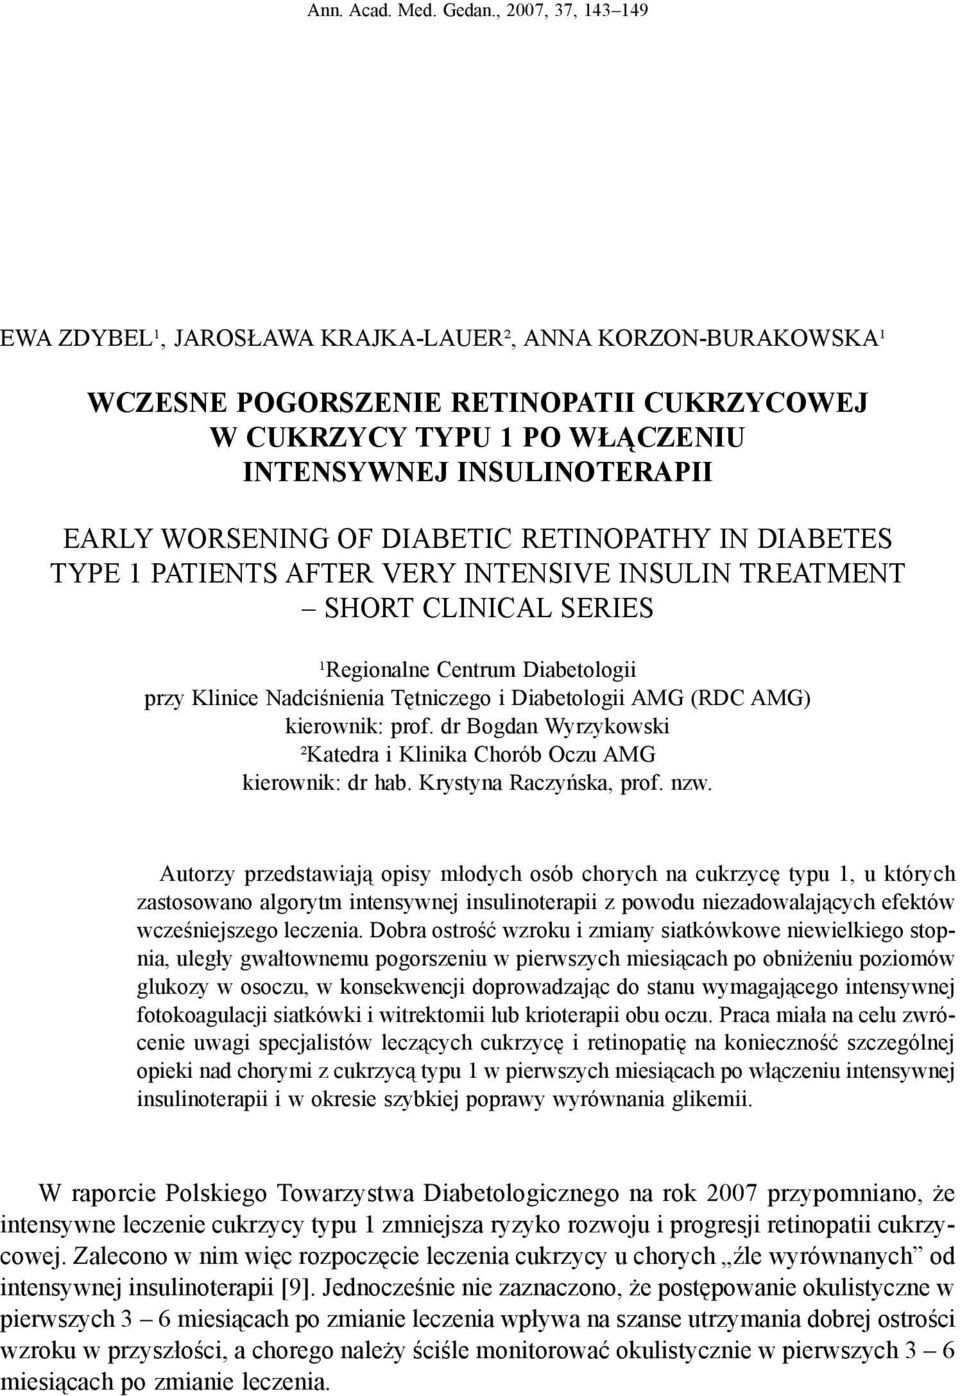 worsening of diabetic retinopathy in diabetes type 1 patients after very intensive insulin treatment short clinical series ¹Regionalne Centrum Diabetologii przy Klinice Nadciśnienia Tętniczego i